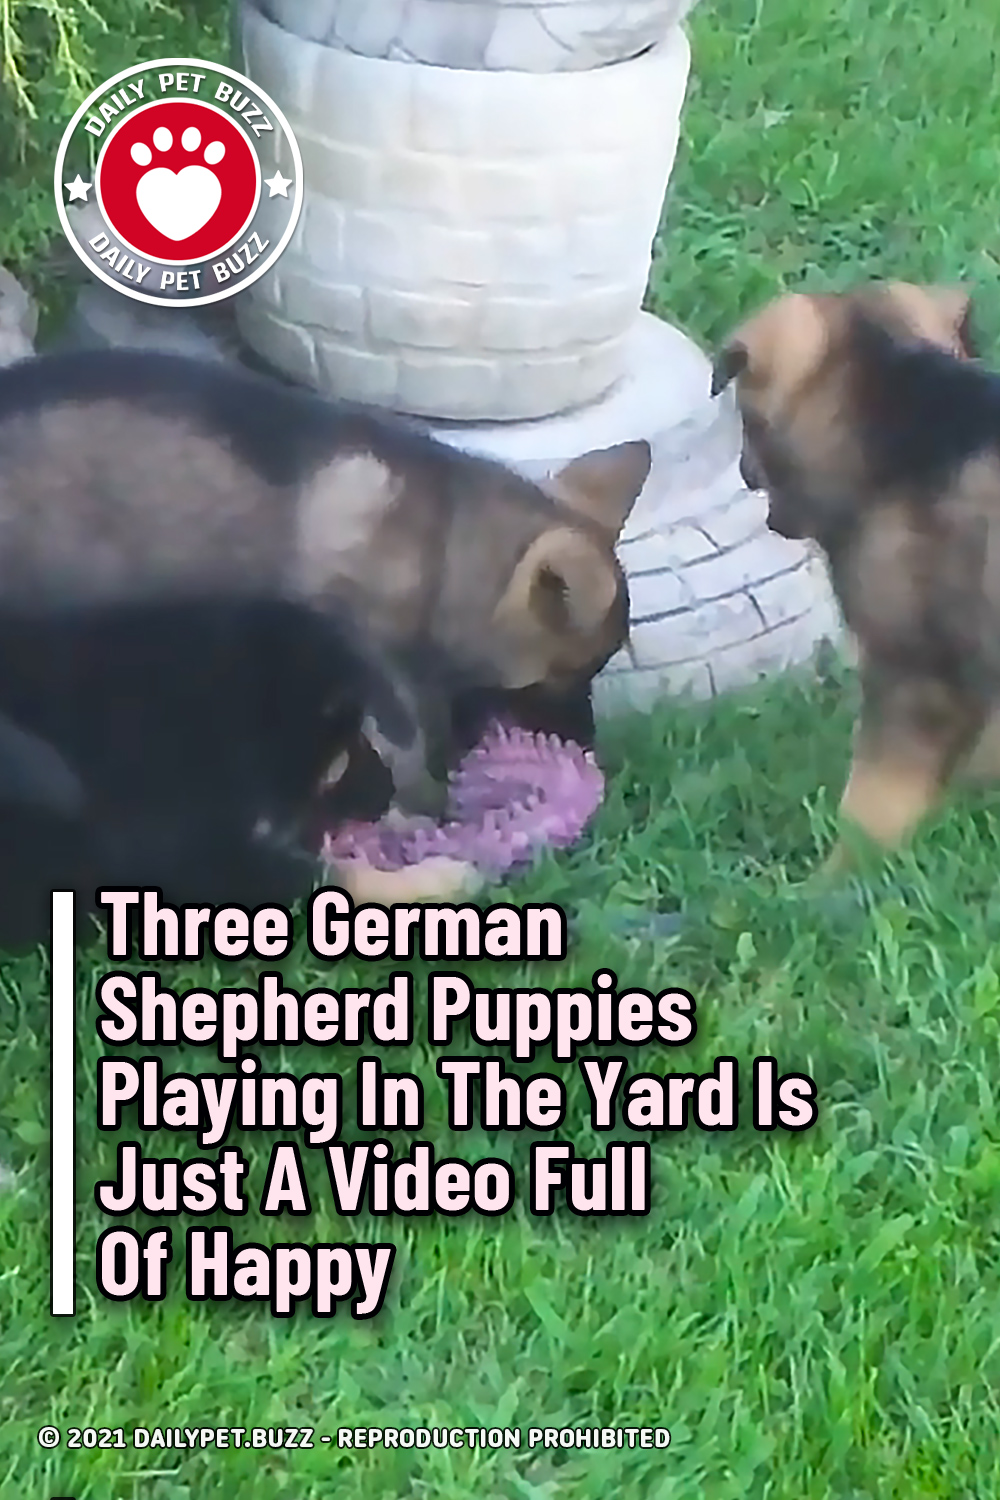 Three German Shepherd Puppies Playing In The Yard Is Just A Video Full Of Happy